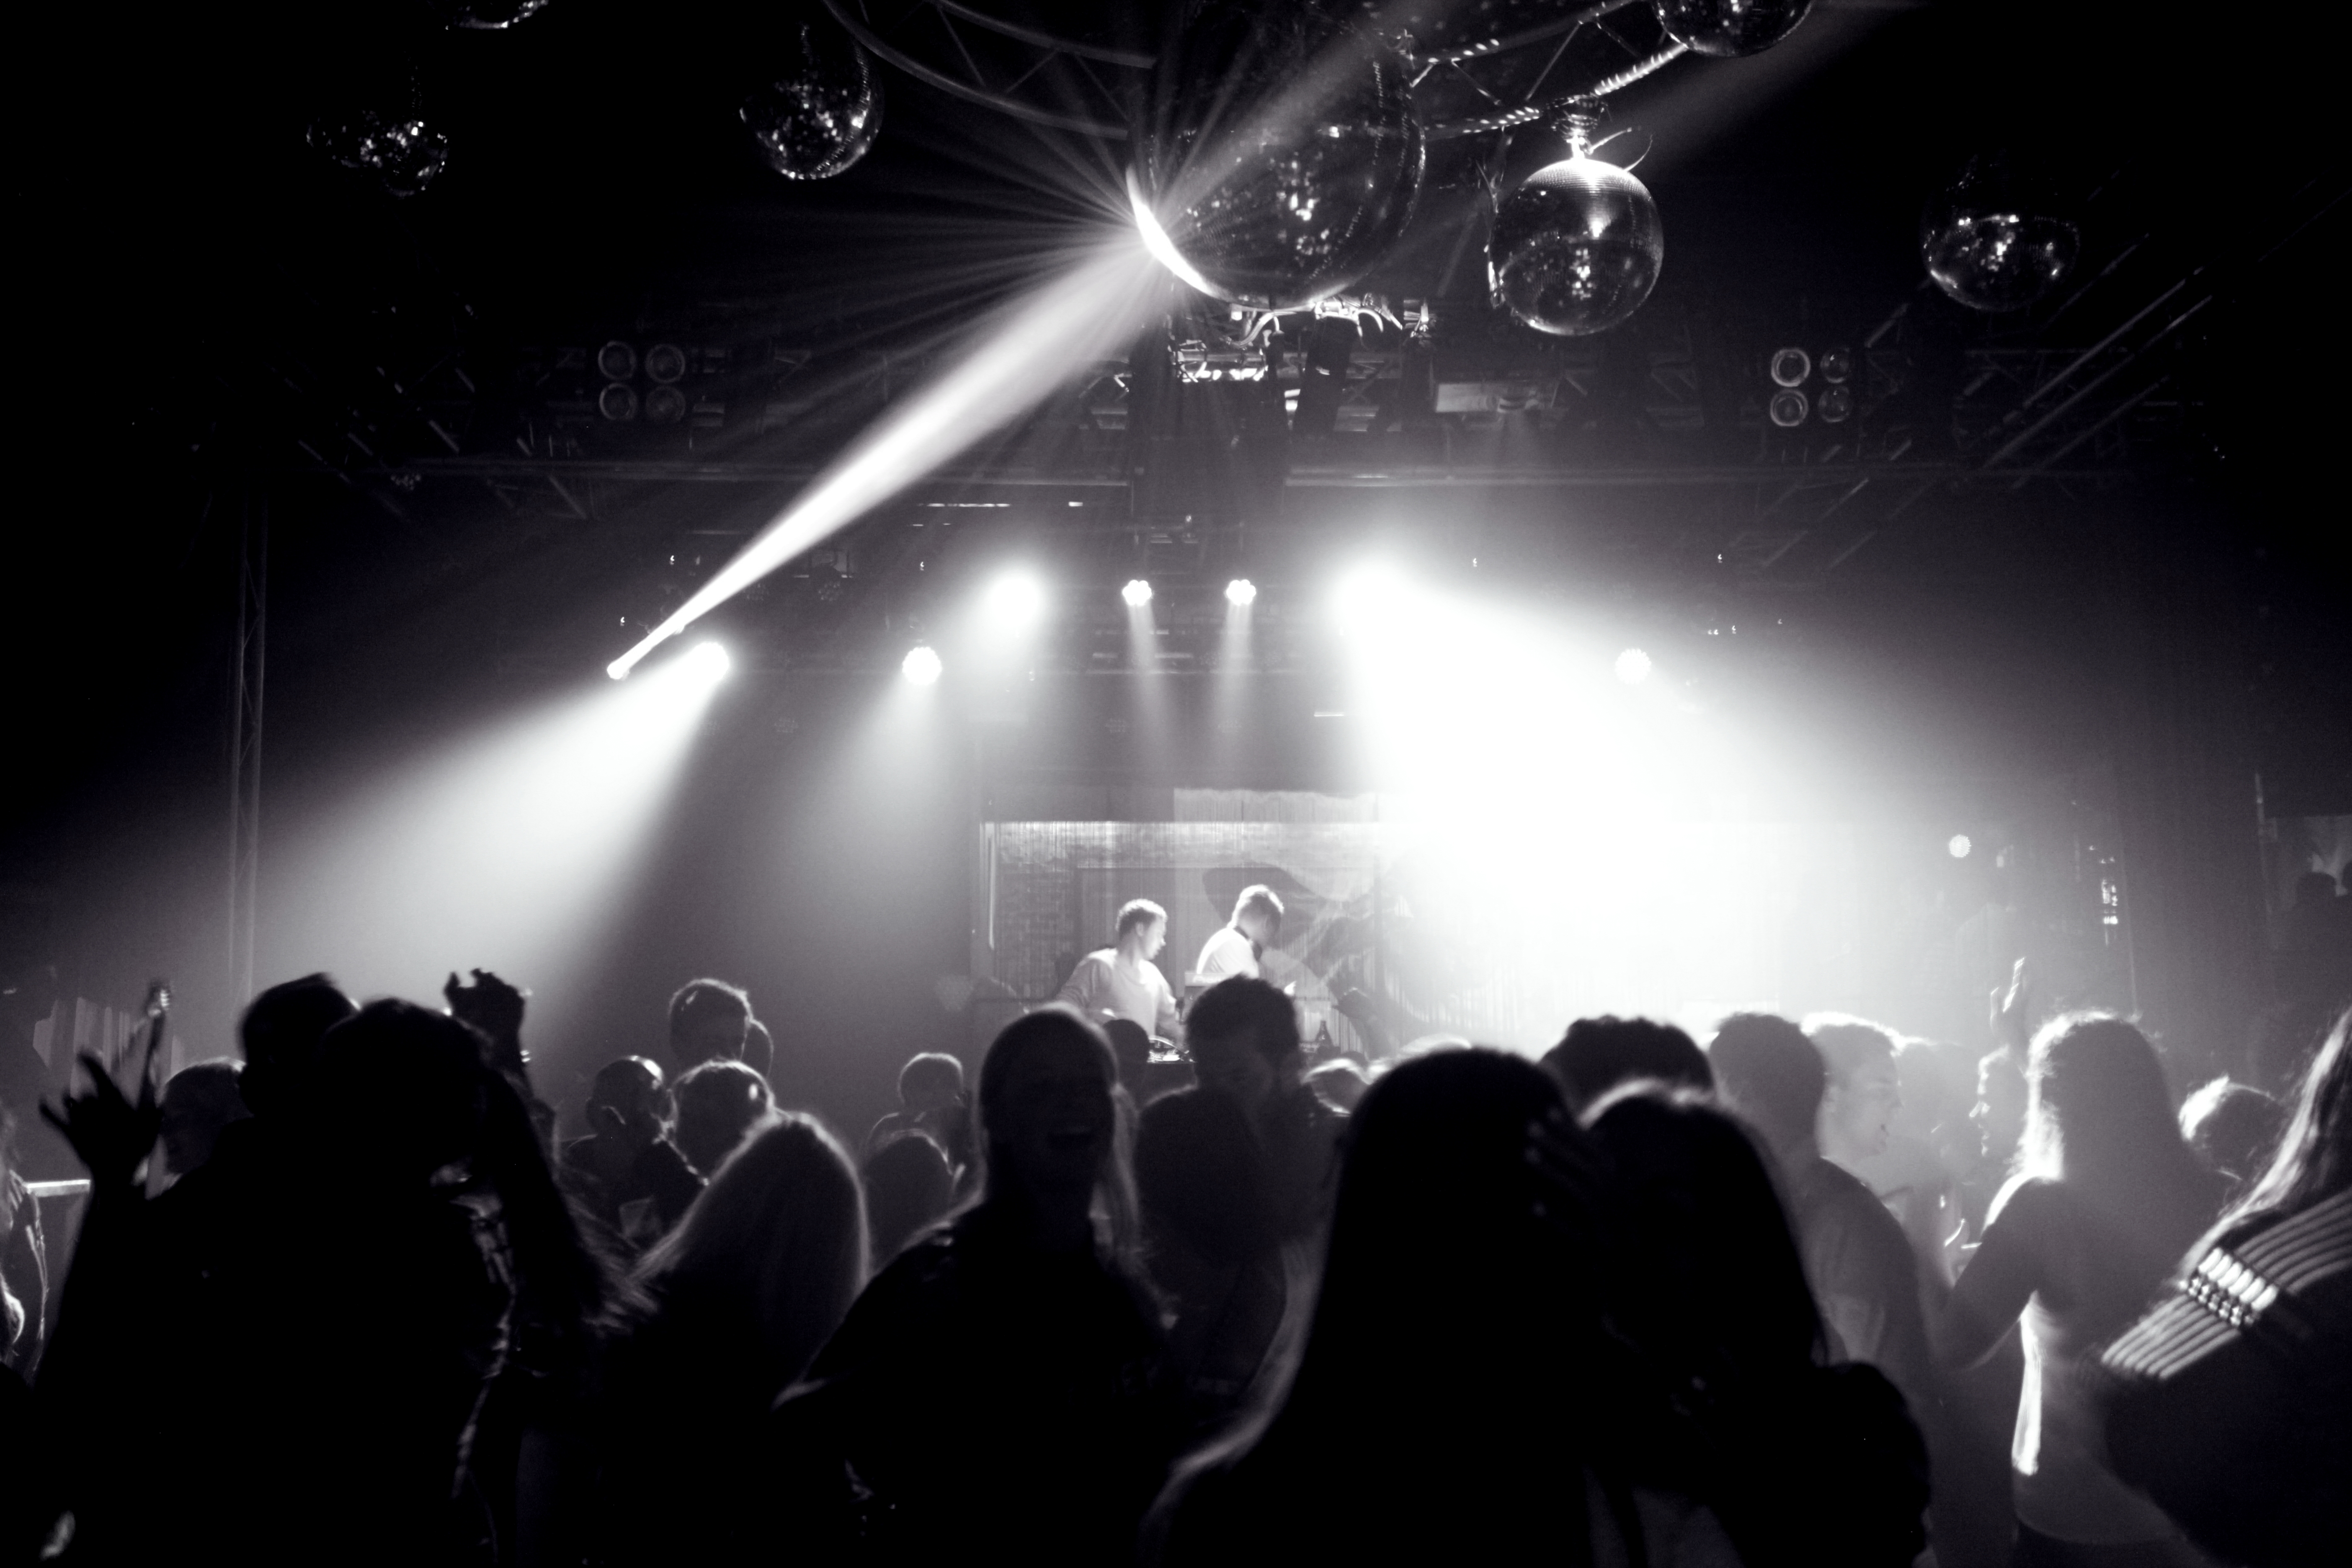 KRSby covers concerts and the night life in Kristiansand extensively. Photo: Fevennen